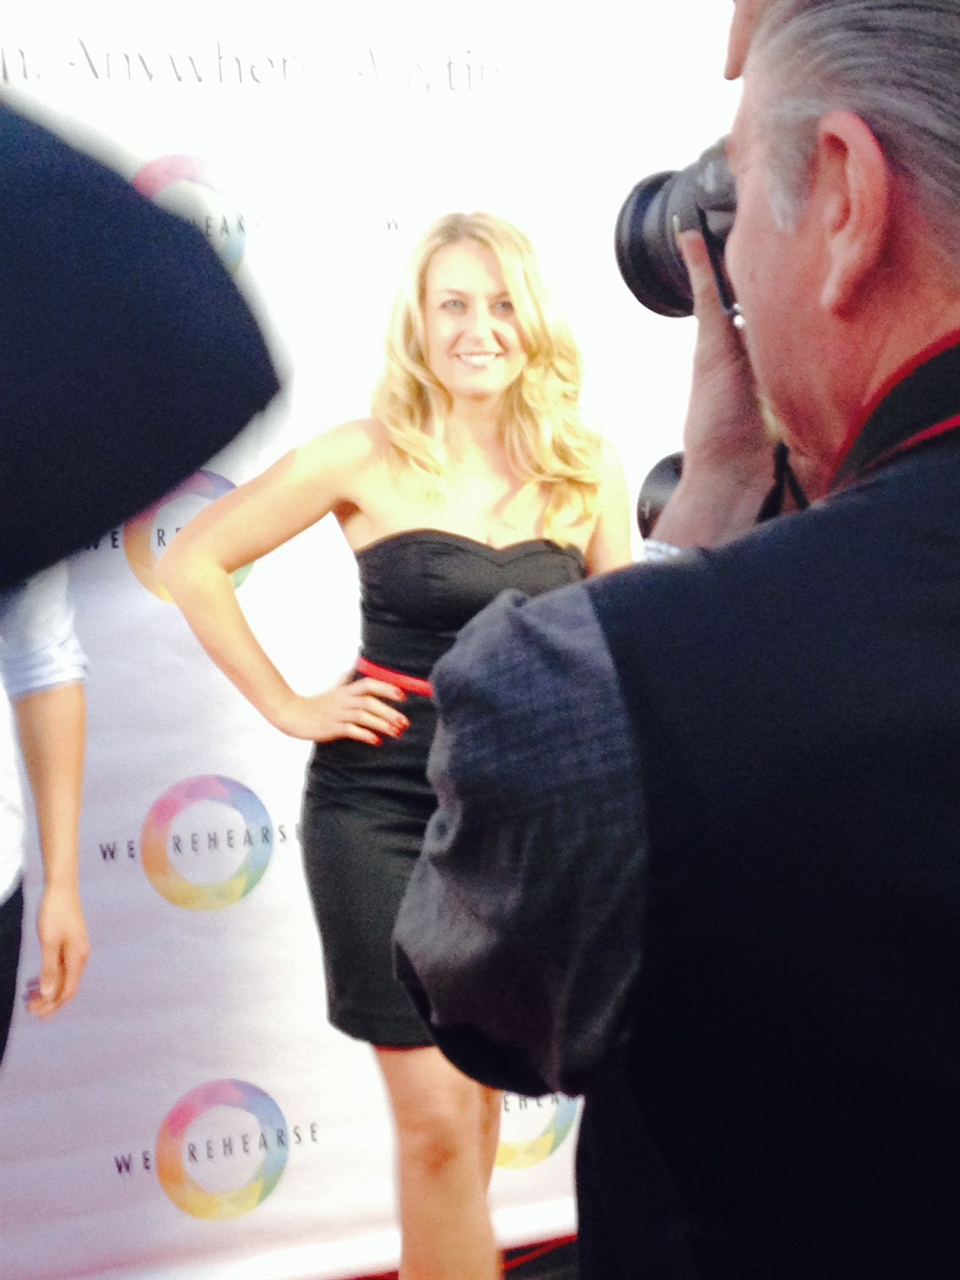 Janine on the red carpet attending the WeRehearse Launch Party event in Hollywood.